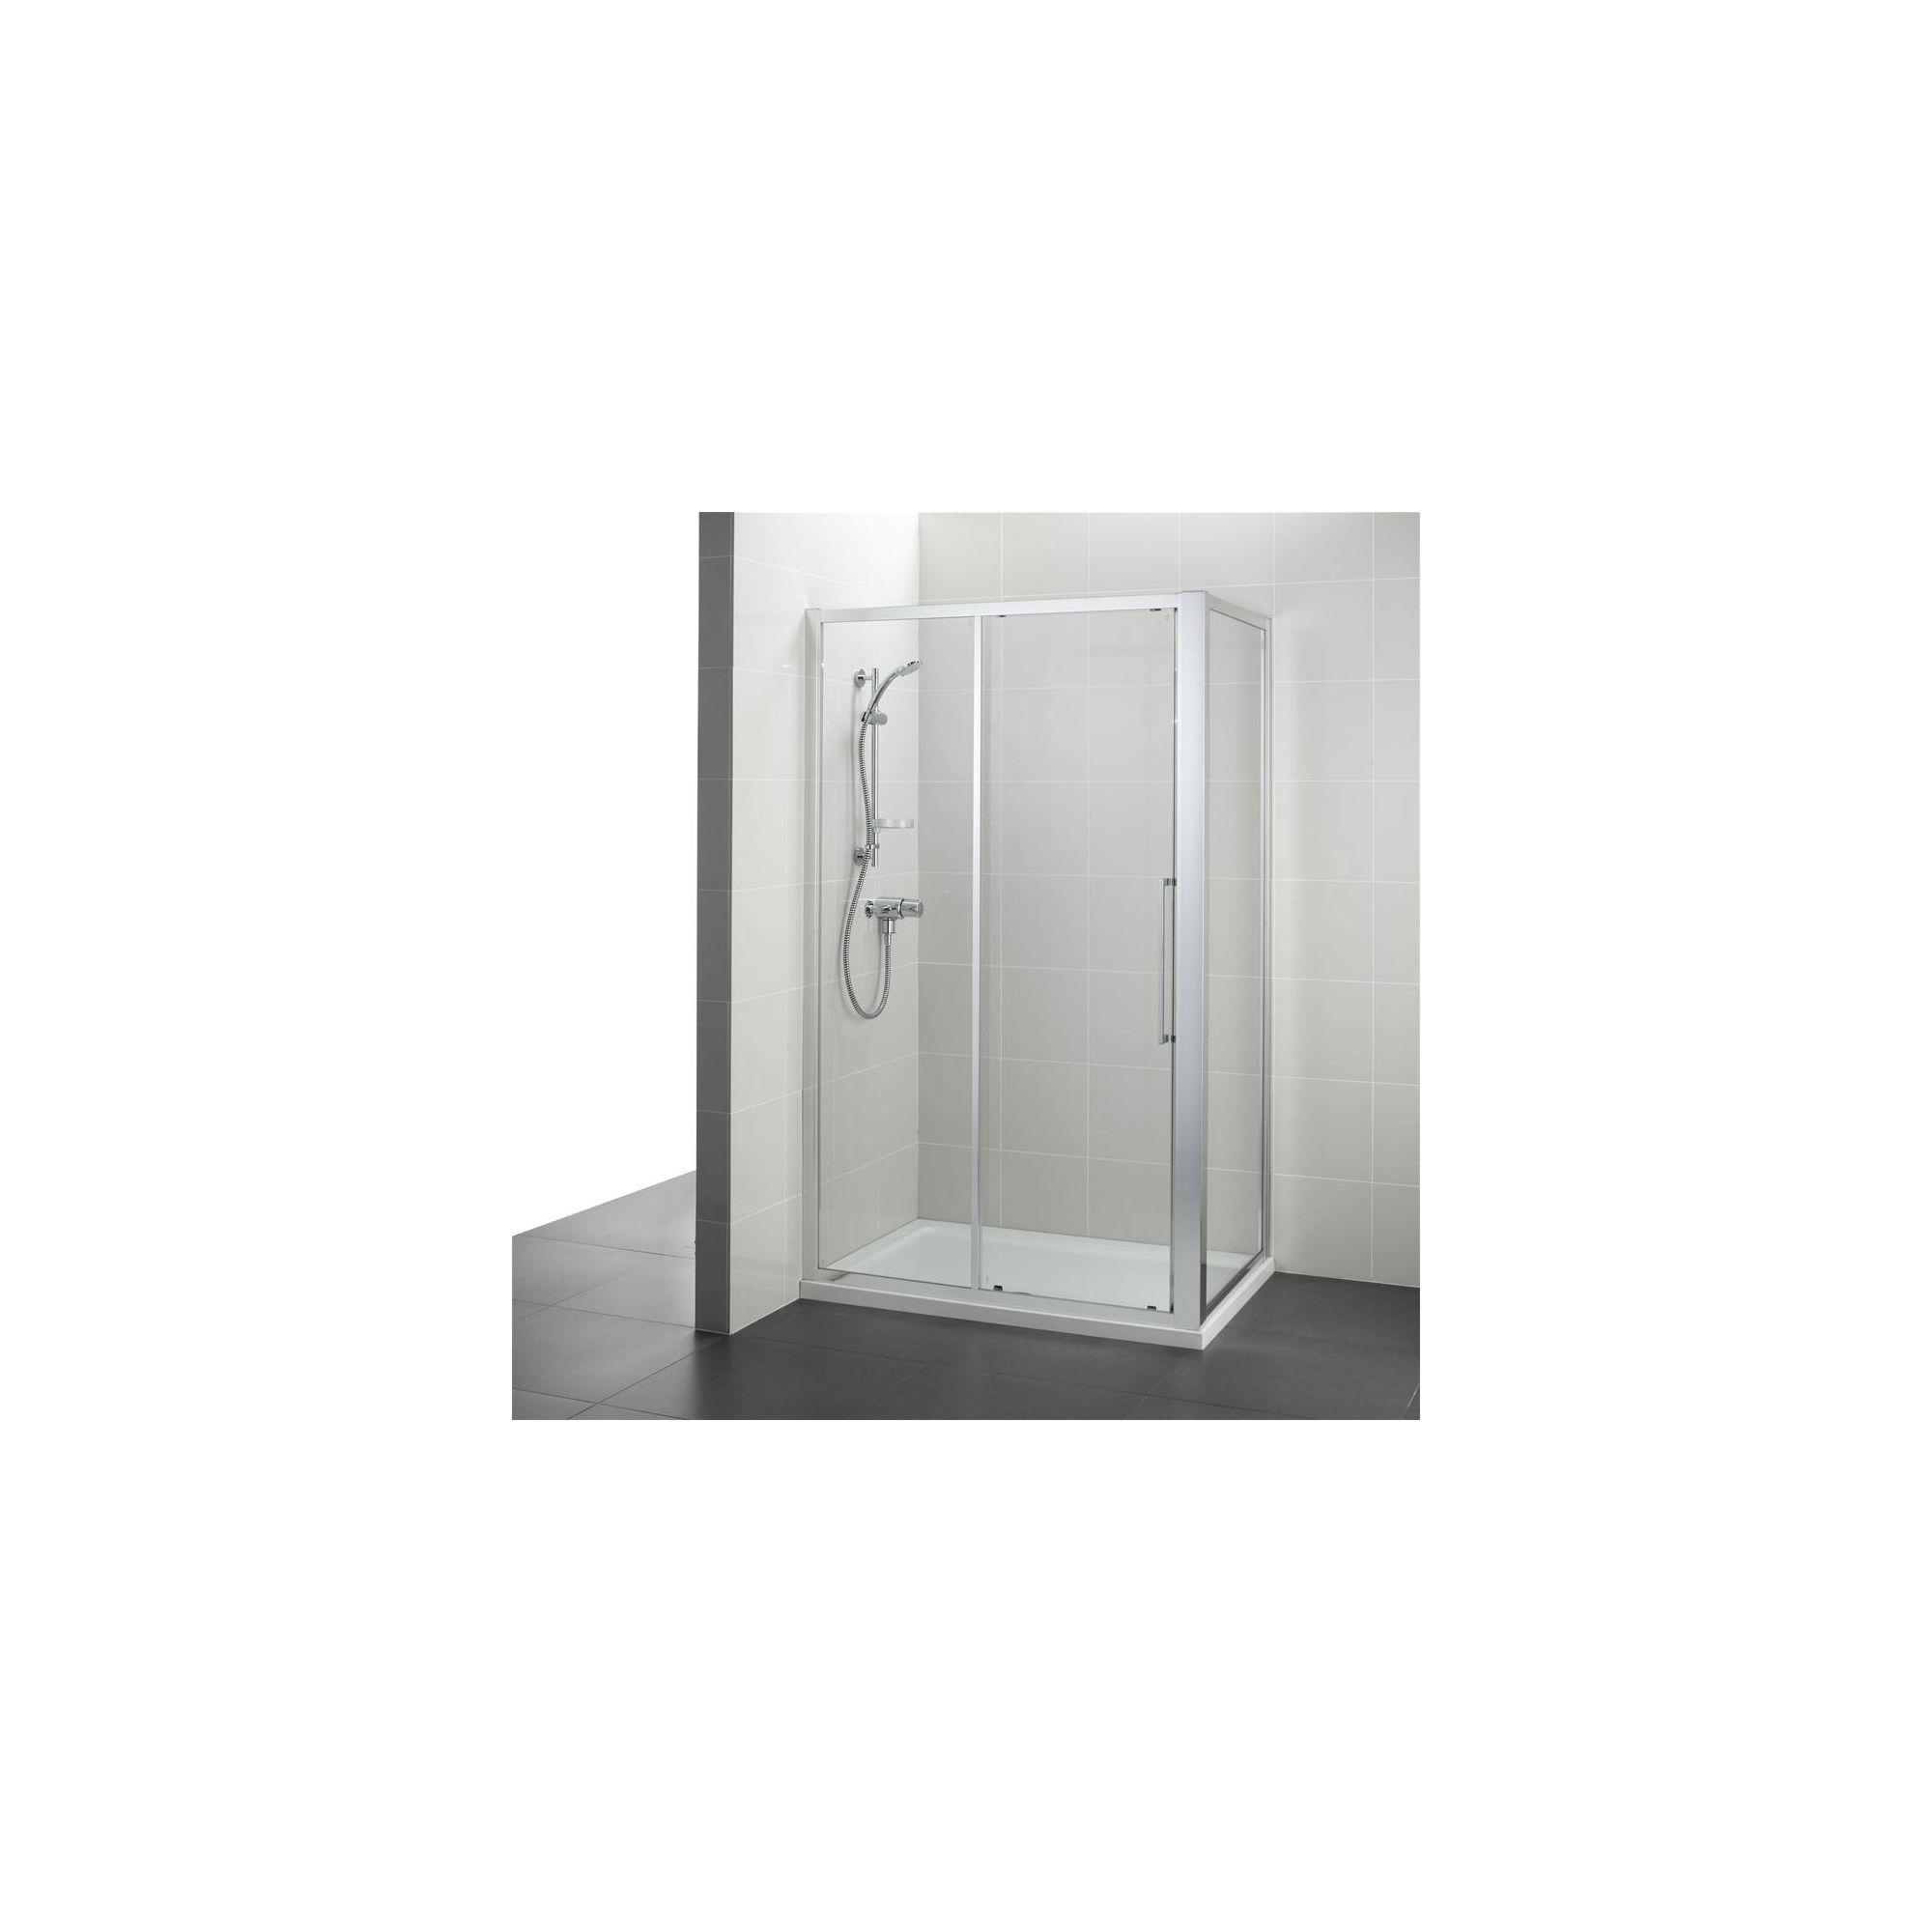 Ideal Standard Kubo Pivot Door Shower Enclosure, 900mm x 900mm, Bright Silver Frame, Low Profile Tray at Tesco Direct